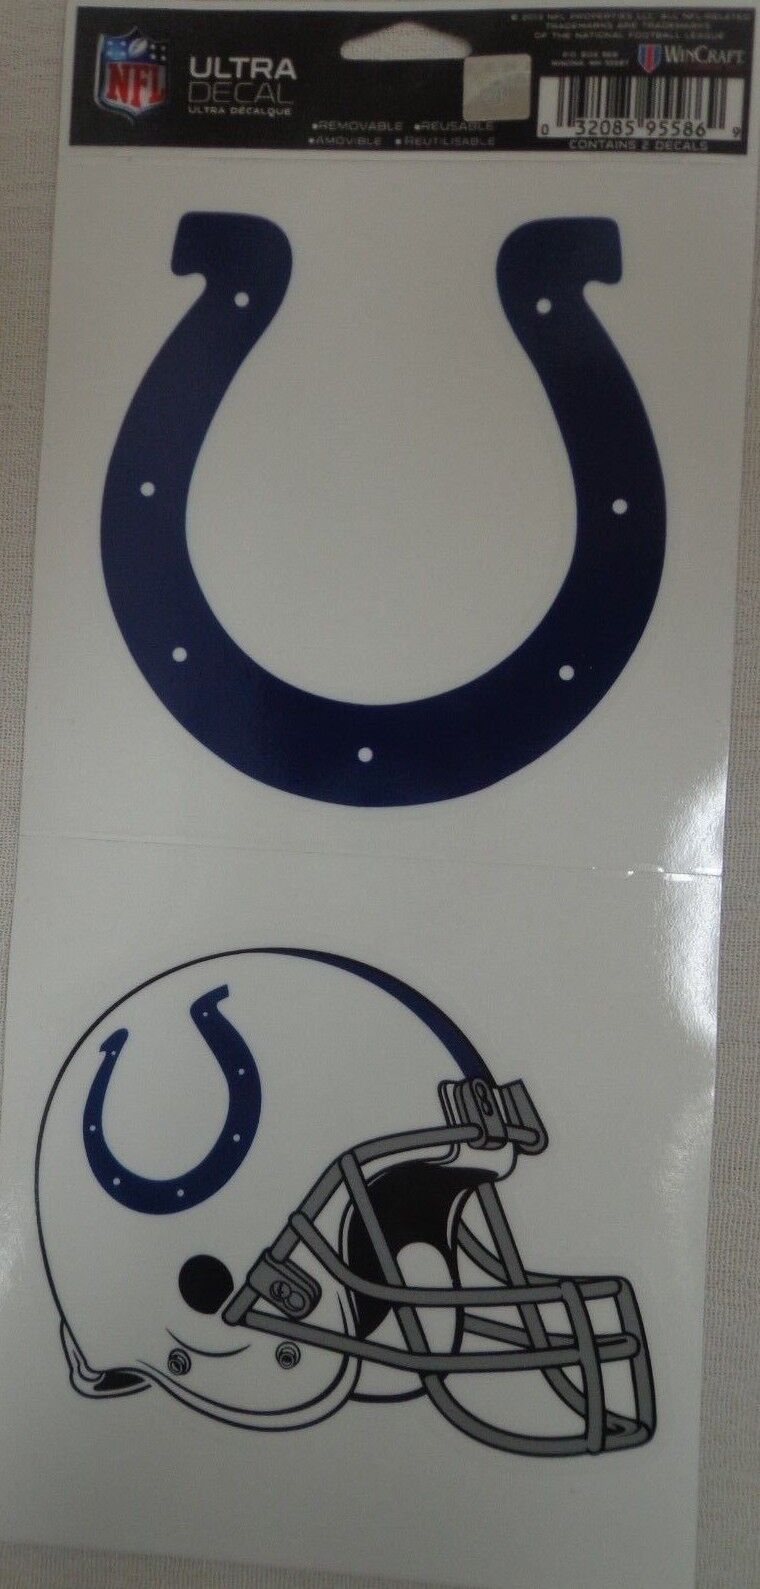 NFL Ultra Decals 2 Pack Set Removable Reusable Sticker Wincraft Indianapolis Colts